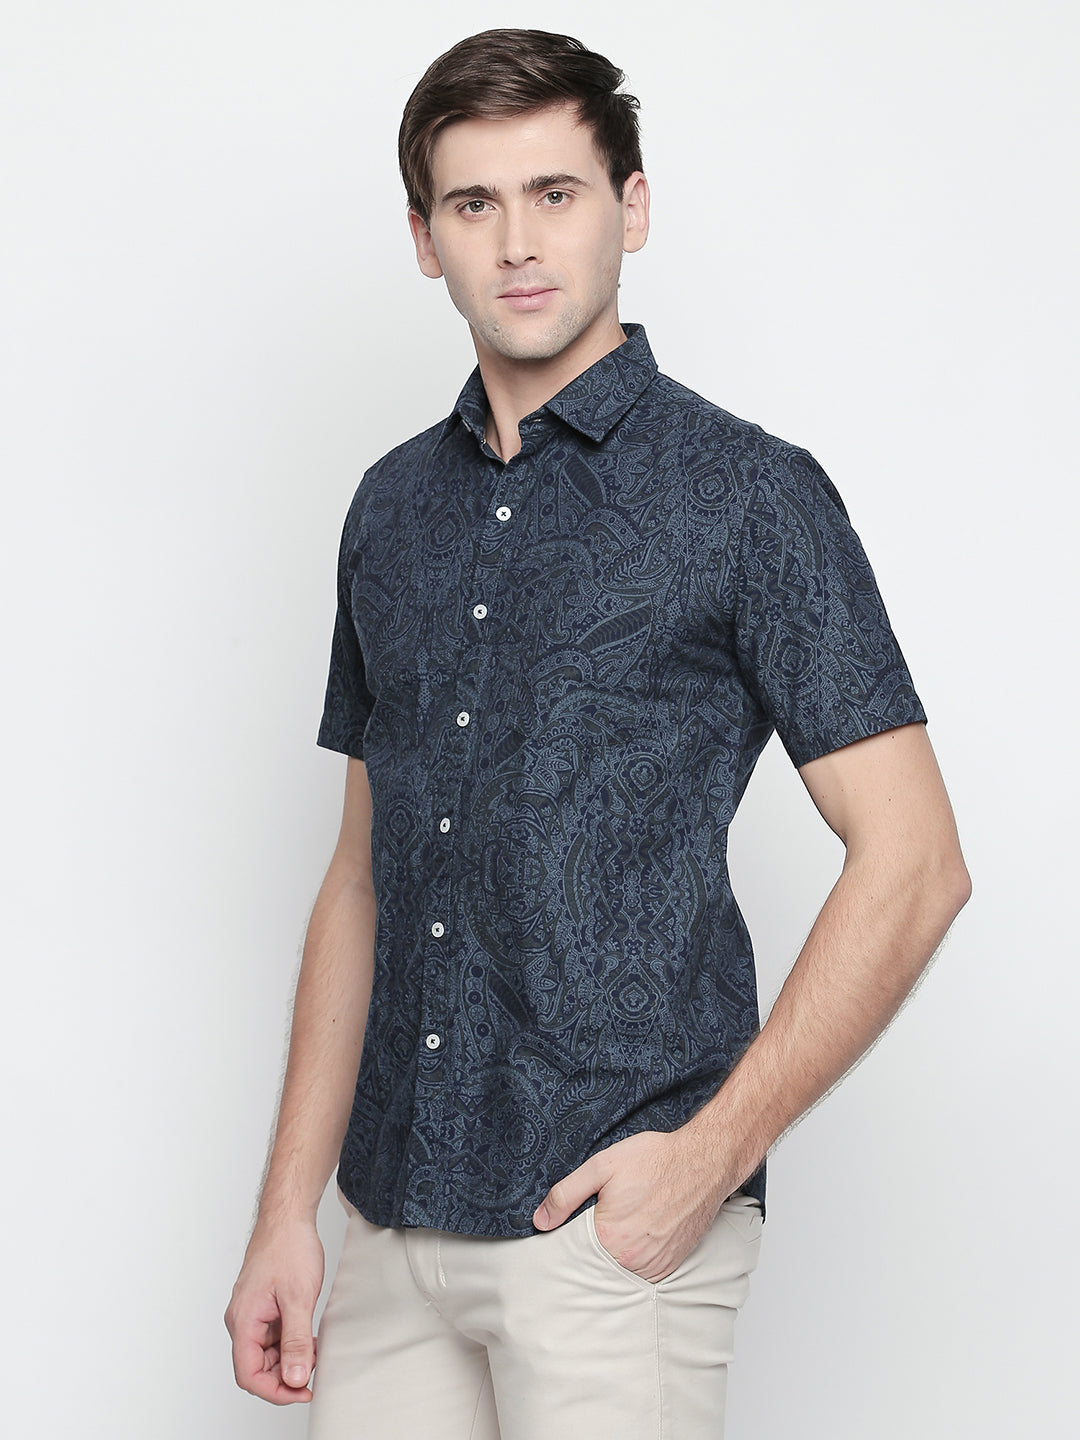 ZIDO Slim Fit Cotton Printed Shirt for Men's PN1437